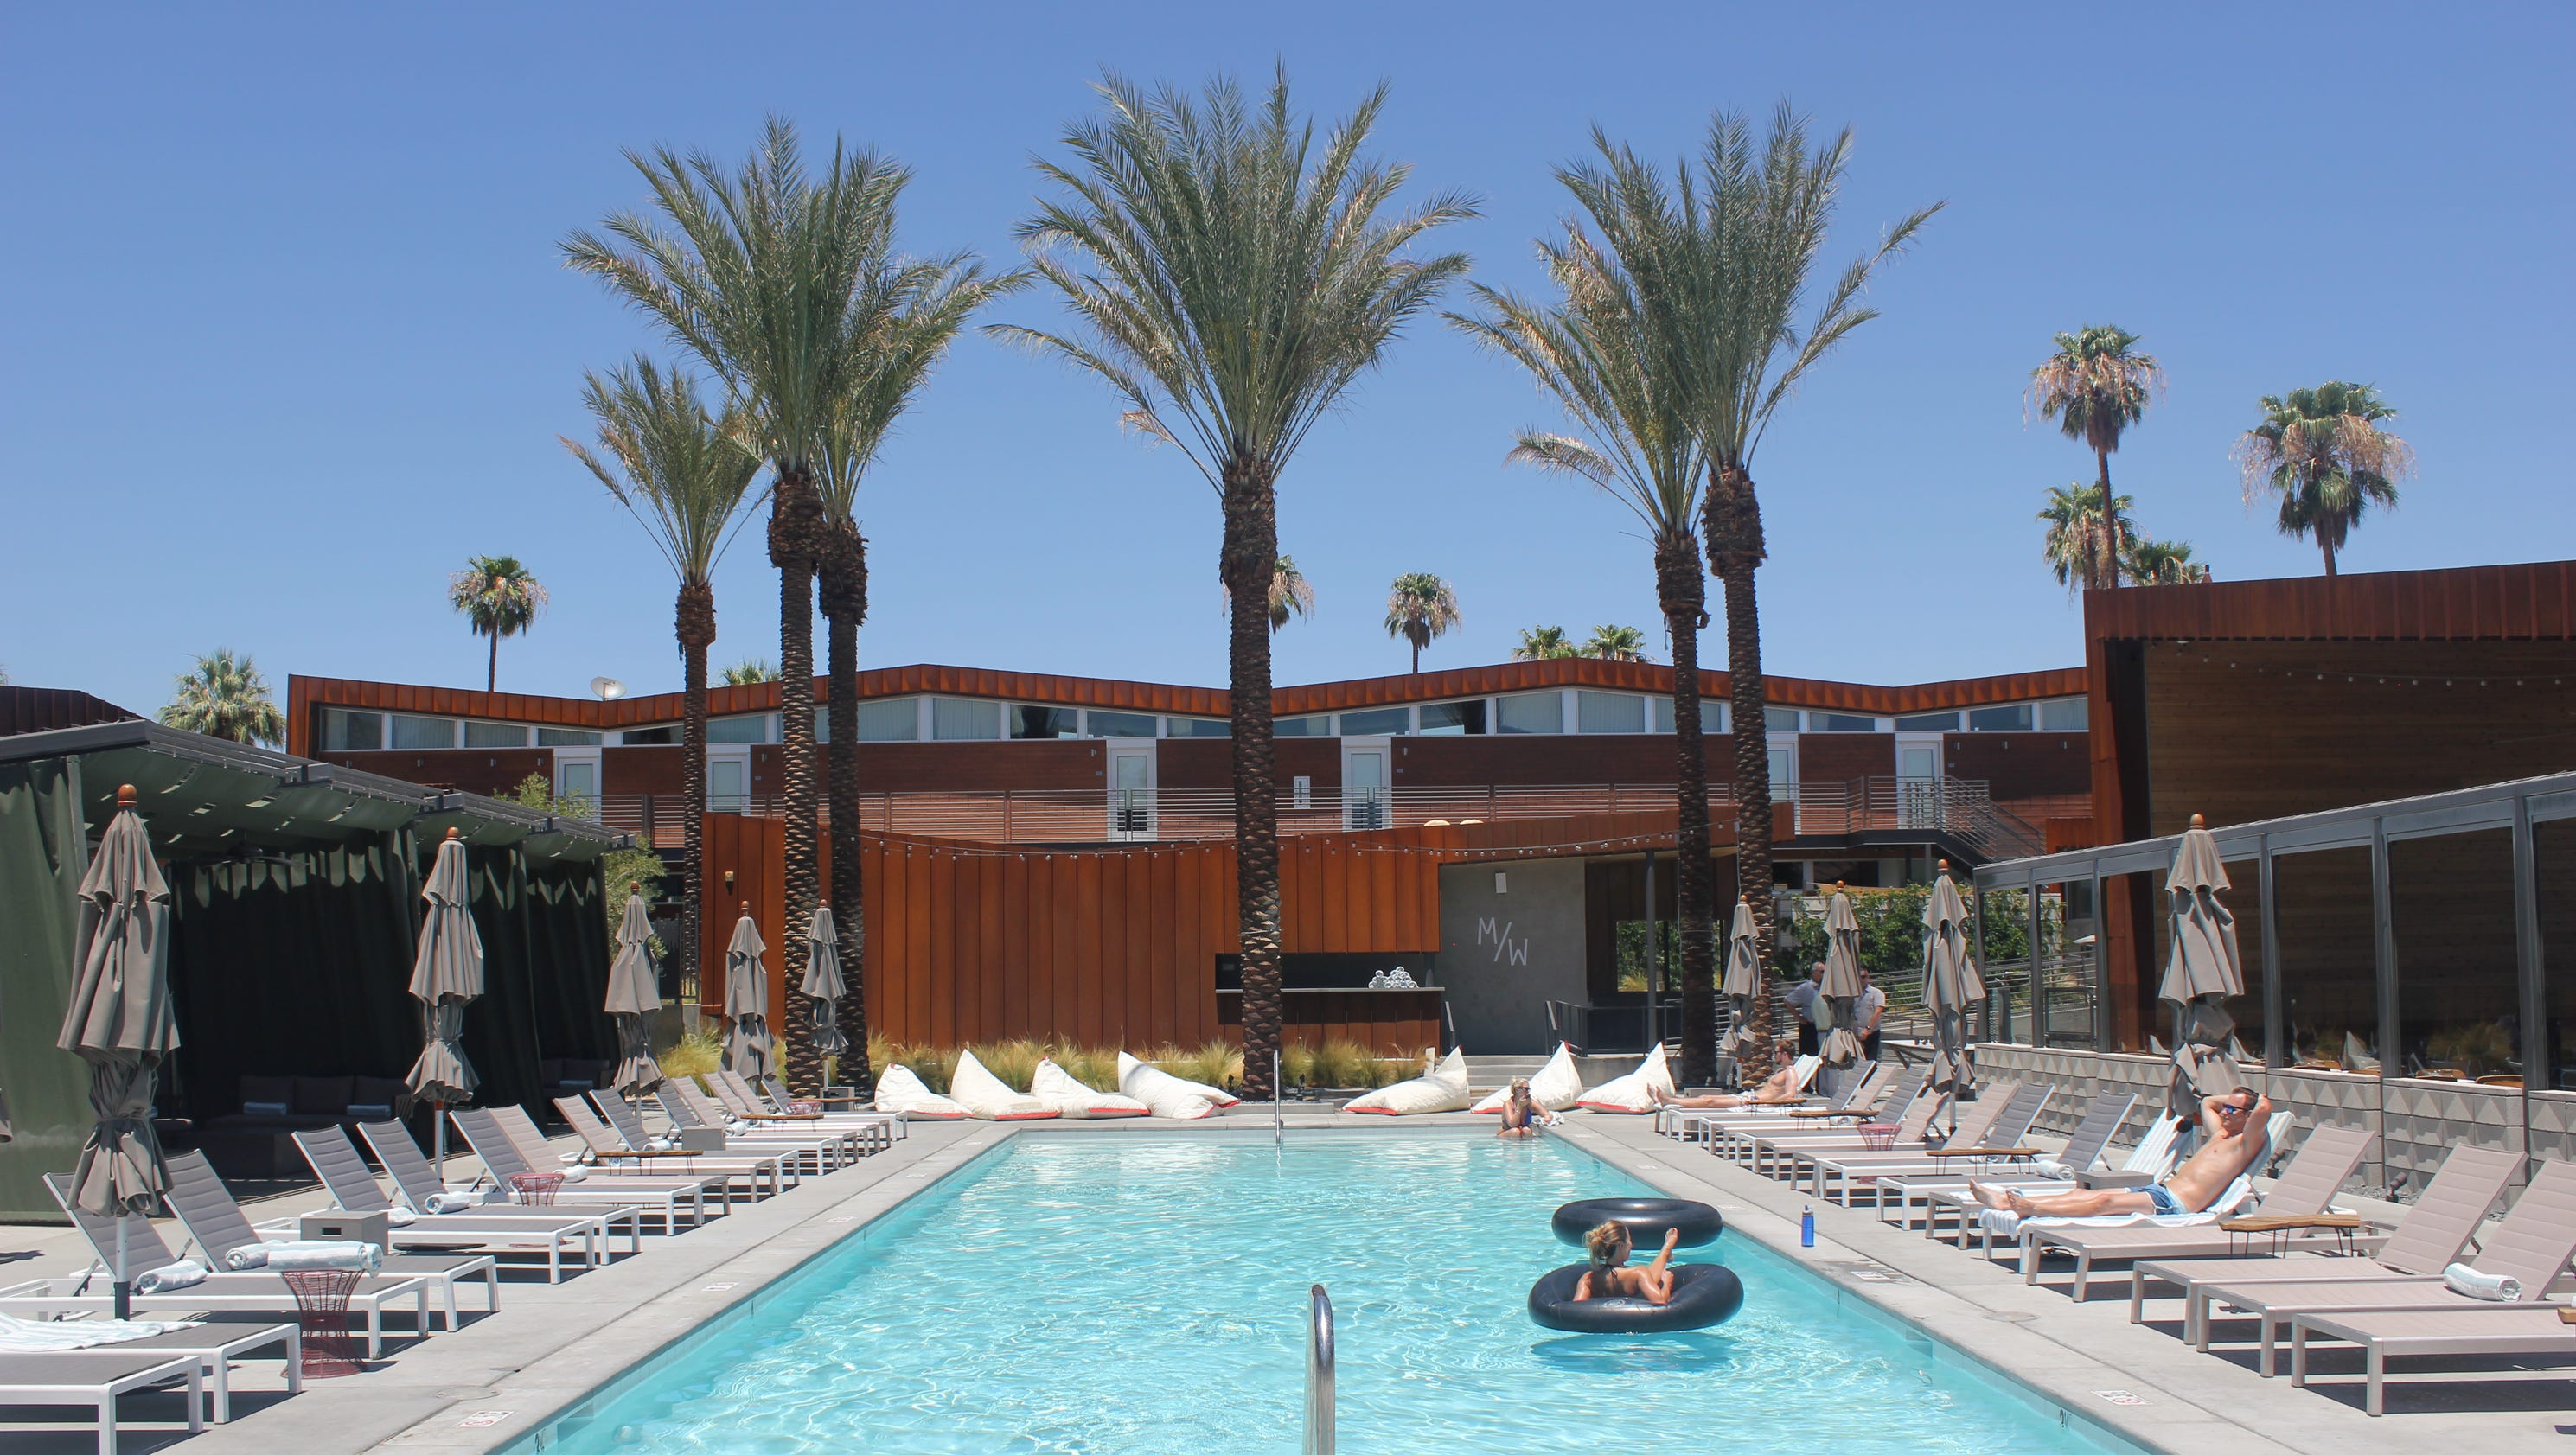 Best Hotels In Palm Springs For Coachella